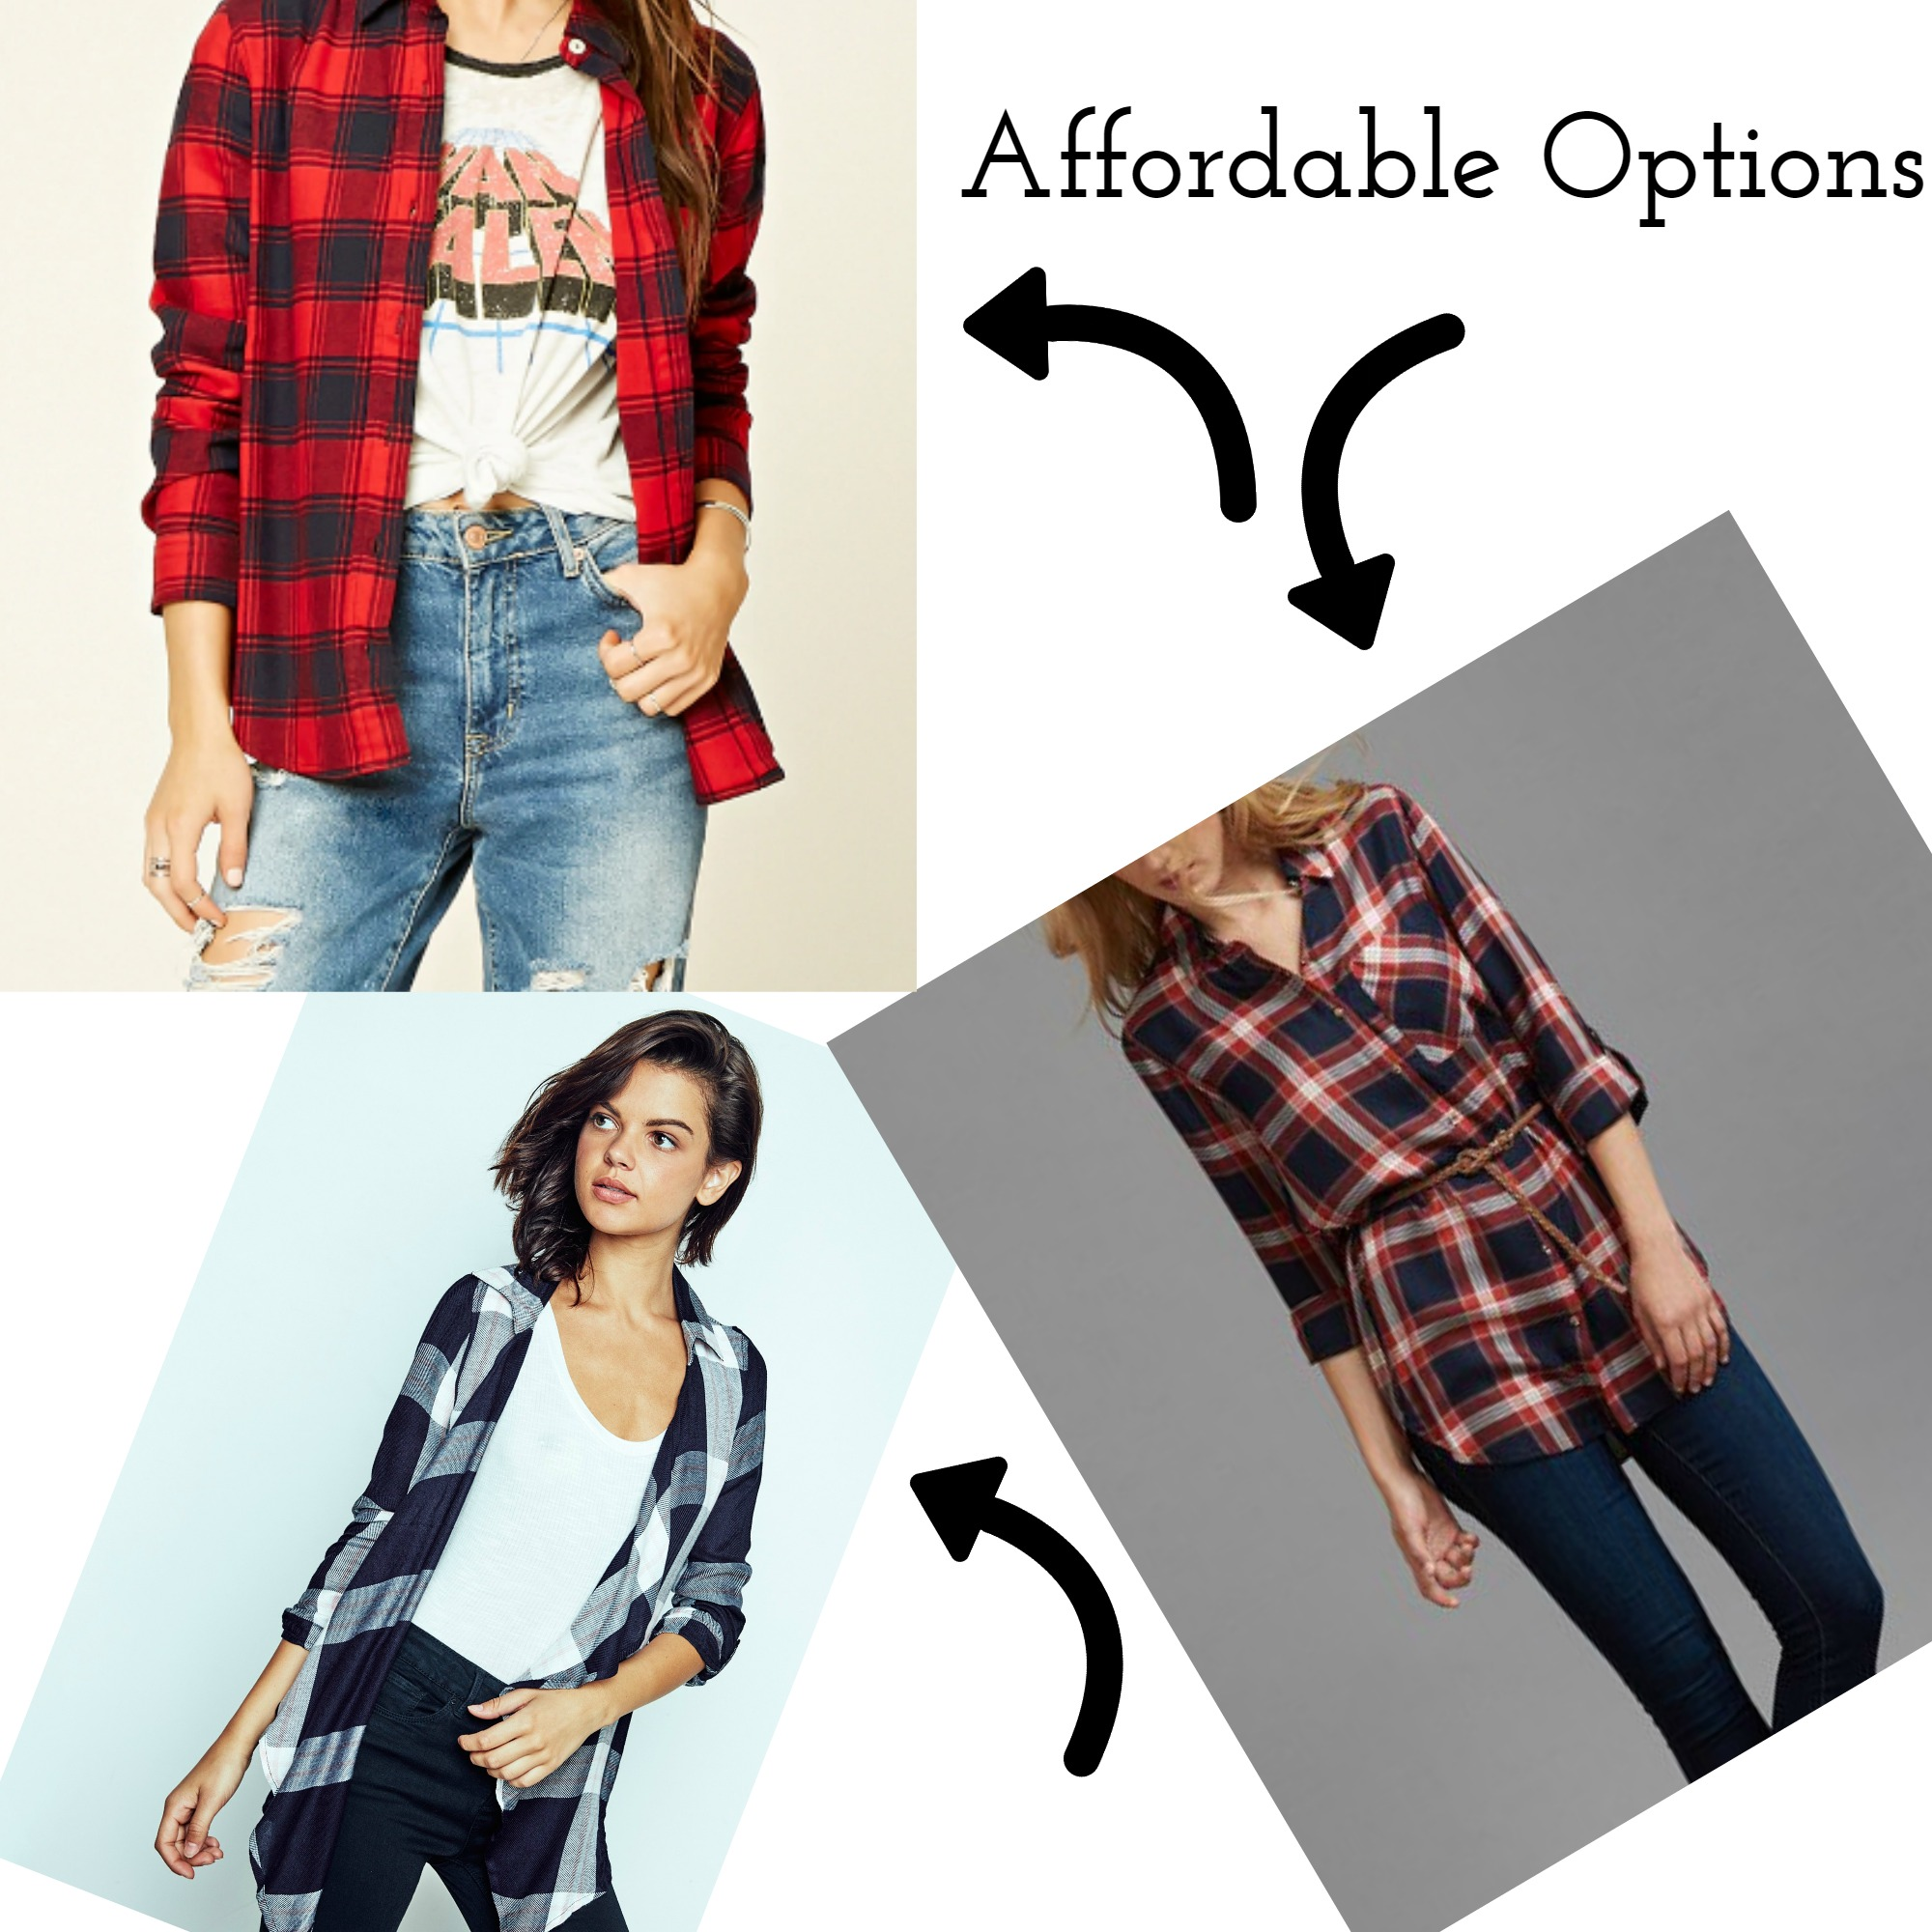 Affordable Pieces: Source  TOP  |  LEFT  |  RIGHT